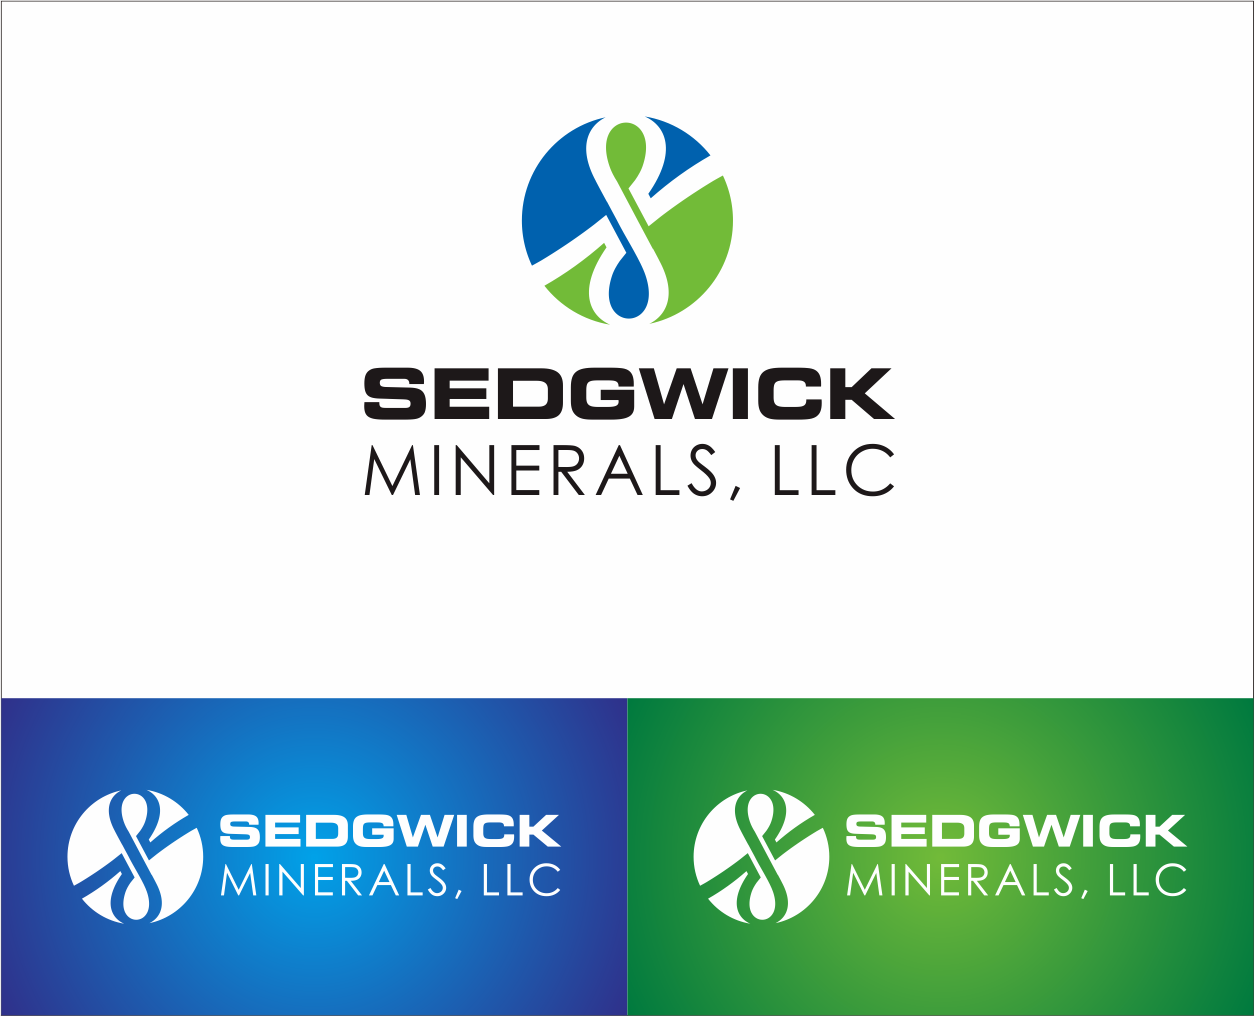 Logo Design by Armada Jamaluddin - Entry No. 70 in the Logo Design Contest Inspiring Logo Design for Sedgwick Minerals, LLC.